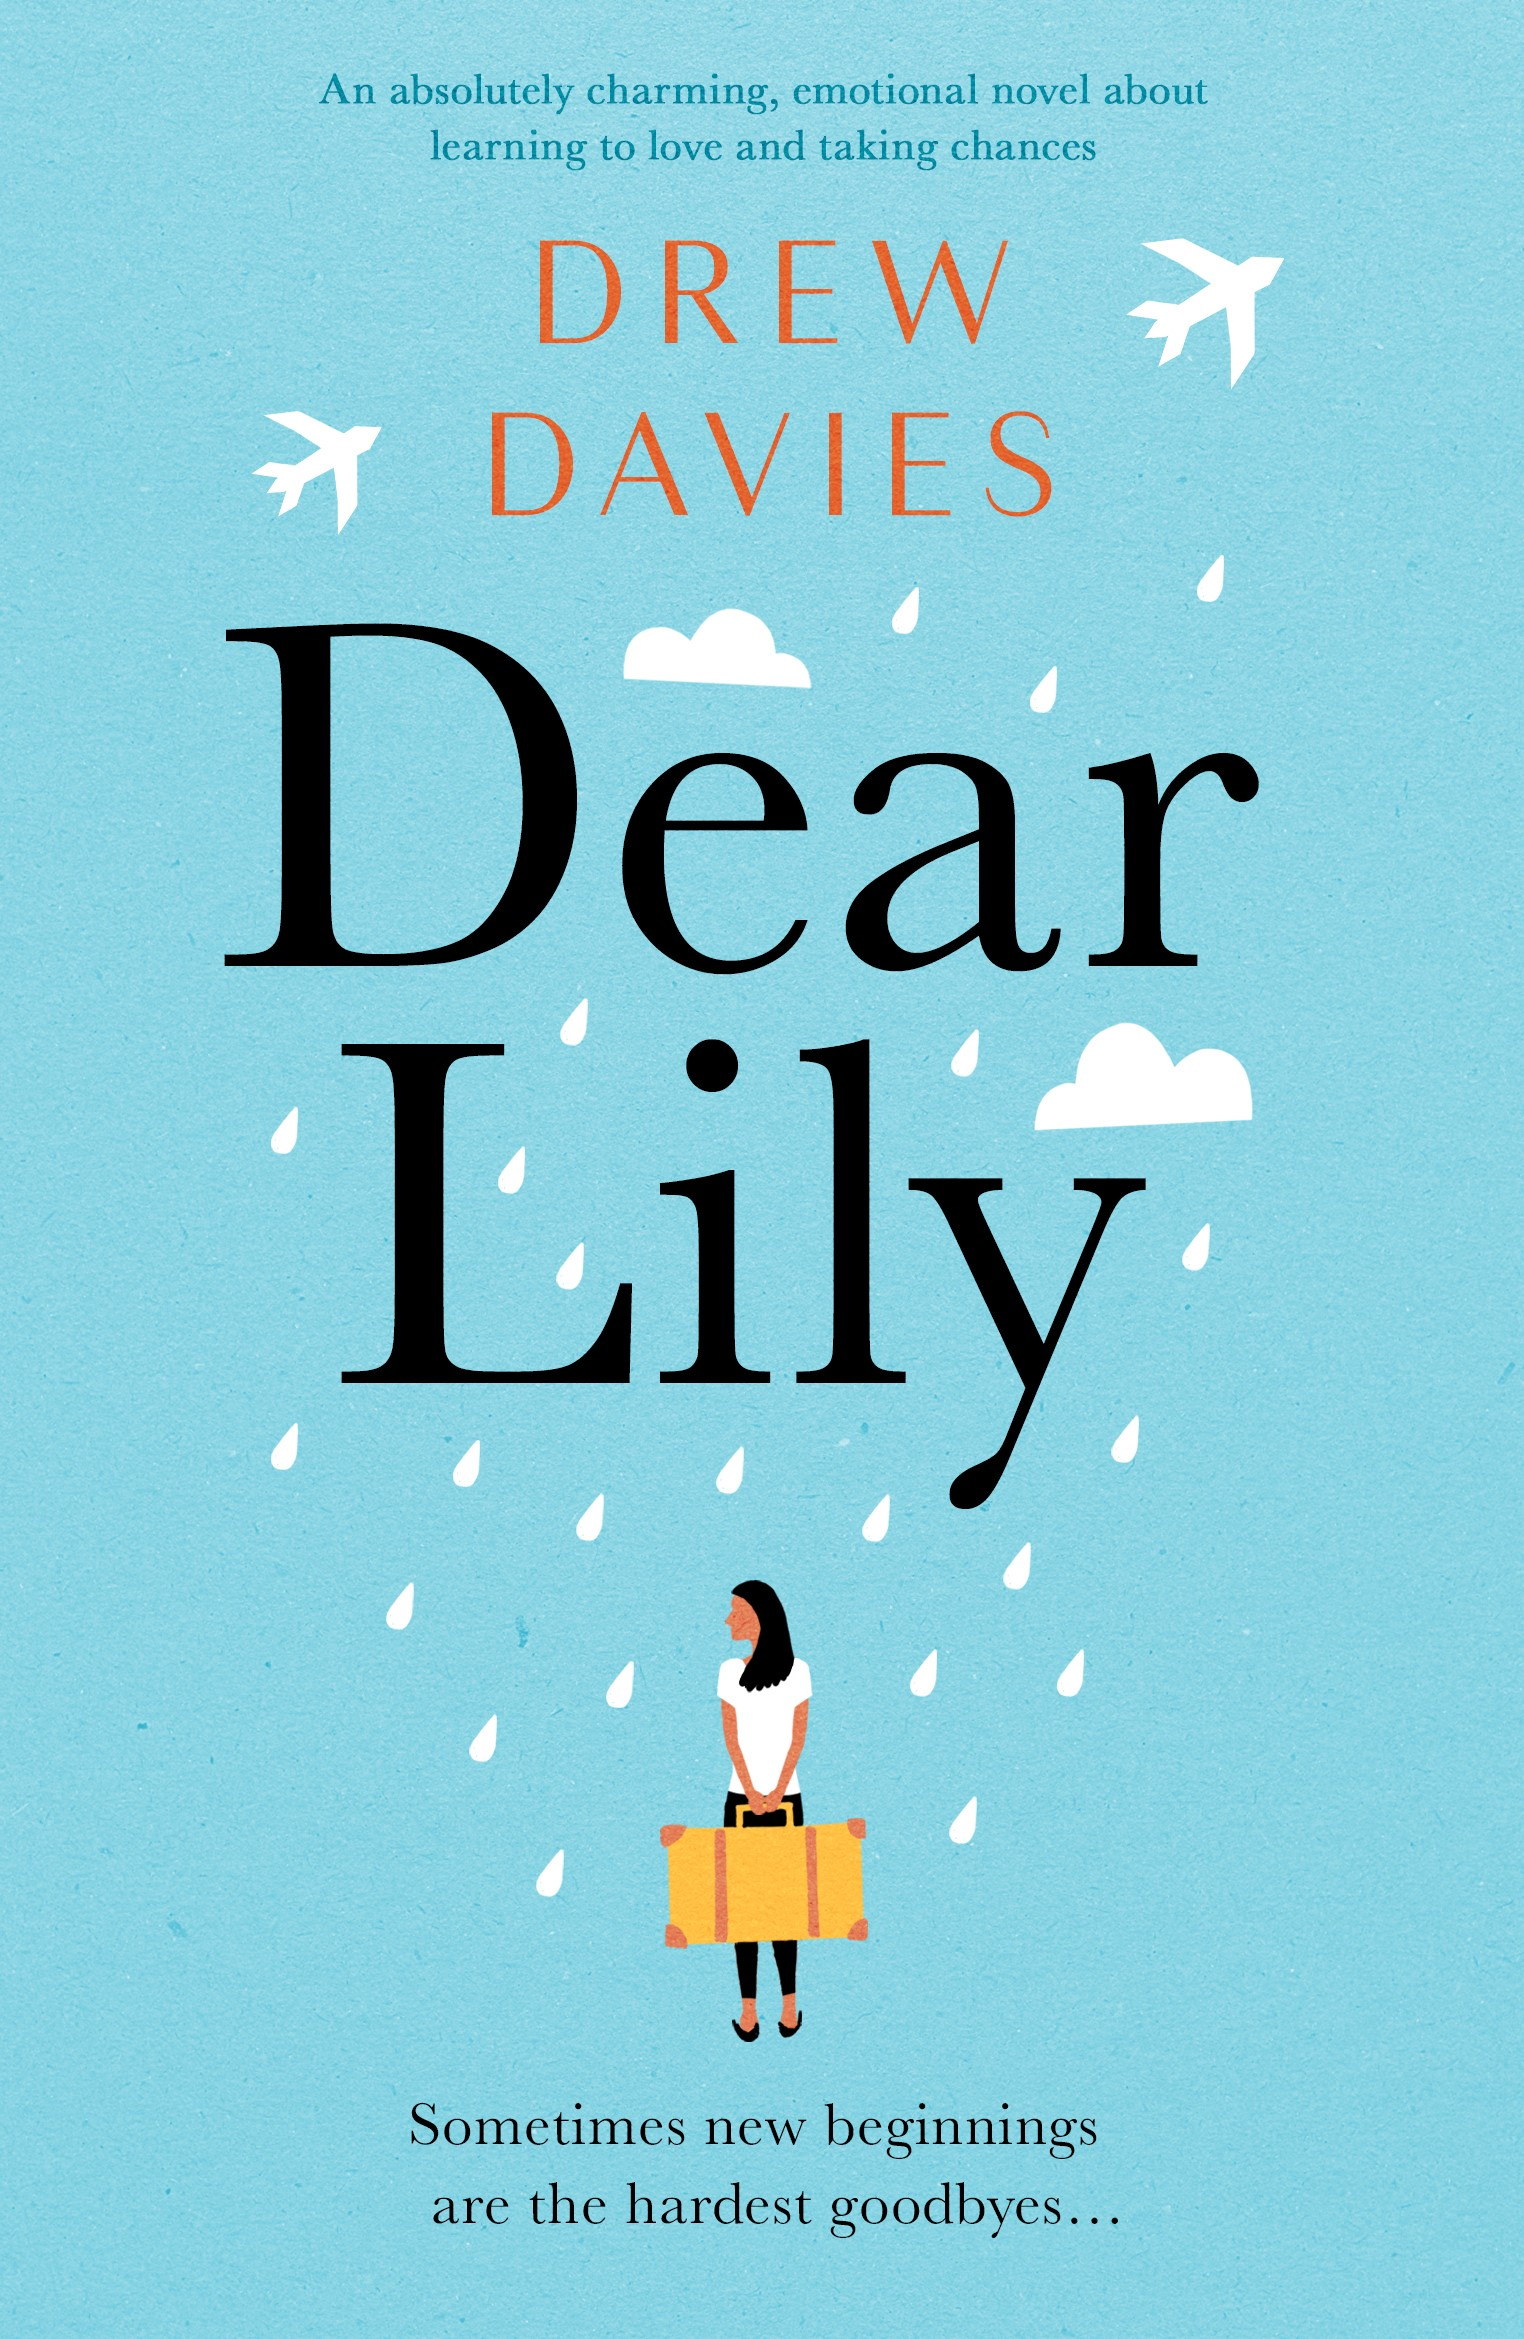 DEAR LILY  Romantic comedy, 281 pages, Bookouture, May 2019  Dear Lily,  It's me, Joy, your much wiser and (very slightly) older sister. I thought I'd start a new tradition of letter writing – now that we're long distance.  On the plane over here, I began to cry in seat 21C. I think the magnitude of it finally hit me, after everything that happened…  I haven't even unpacked yet – the only thing I've taken out of my suitcase is Harville, your beloved childhood teddy. Sorry for stealing him, but I need him more than you do. Every time I look at that little brown bear I think about our childhood. Remember that dance we made up to Annie' s 'It's a Hard Knock Life'? (Remember the broom choreography?)  I'm also sorry for abandoning you – I've always been your agony aunt, and a buffer in your infamous shouting matches with Mum. But I had to leave, Lily, I had to.  Anyway, I'm here now. I'm here to start over, and to face up to the past. I want to learn to laugh again, and to find someone to love who will maybe even love me back. You always told me I was just getting by, not actually living , so I'm finally doing it. Wish me luck, little sister.  Love,  Joy x